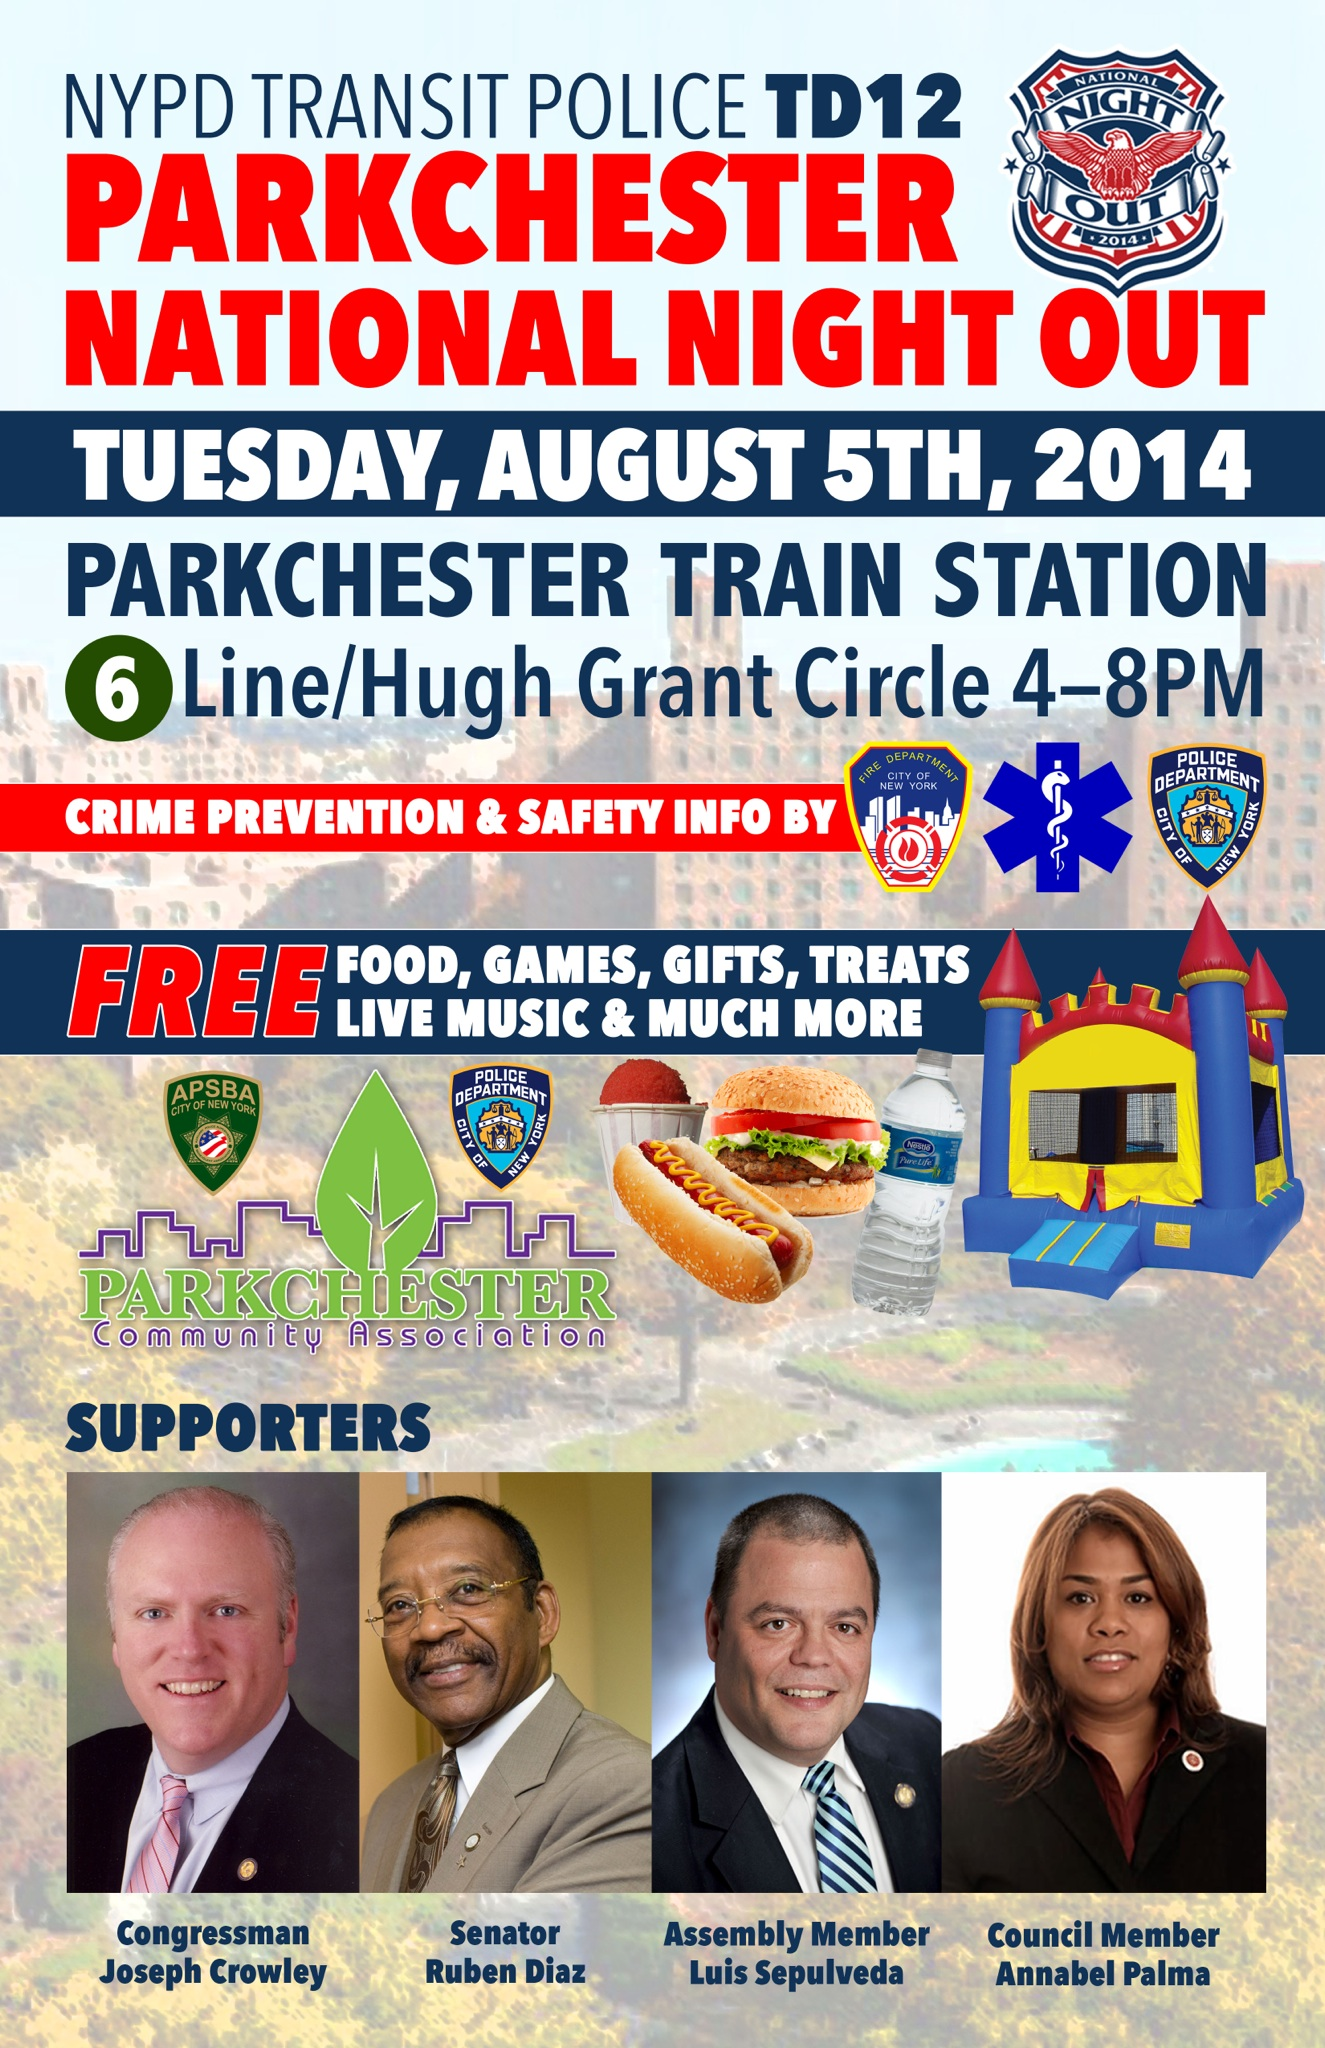 NYPD Transit Police National Night Out